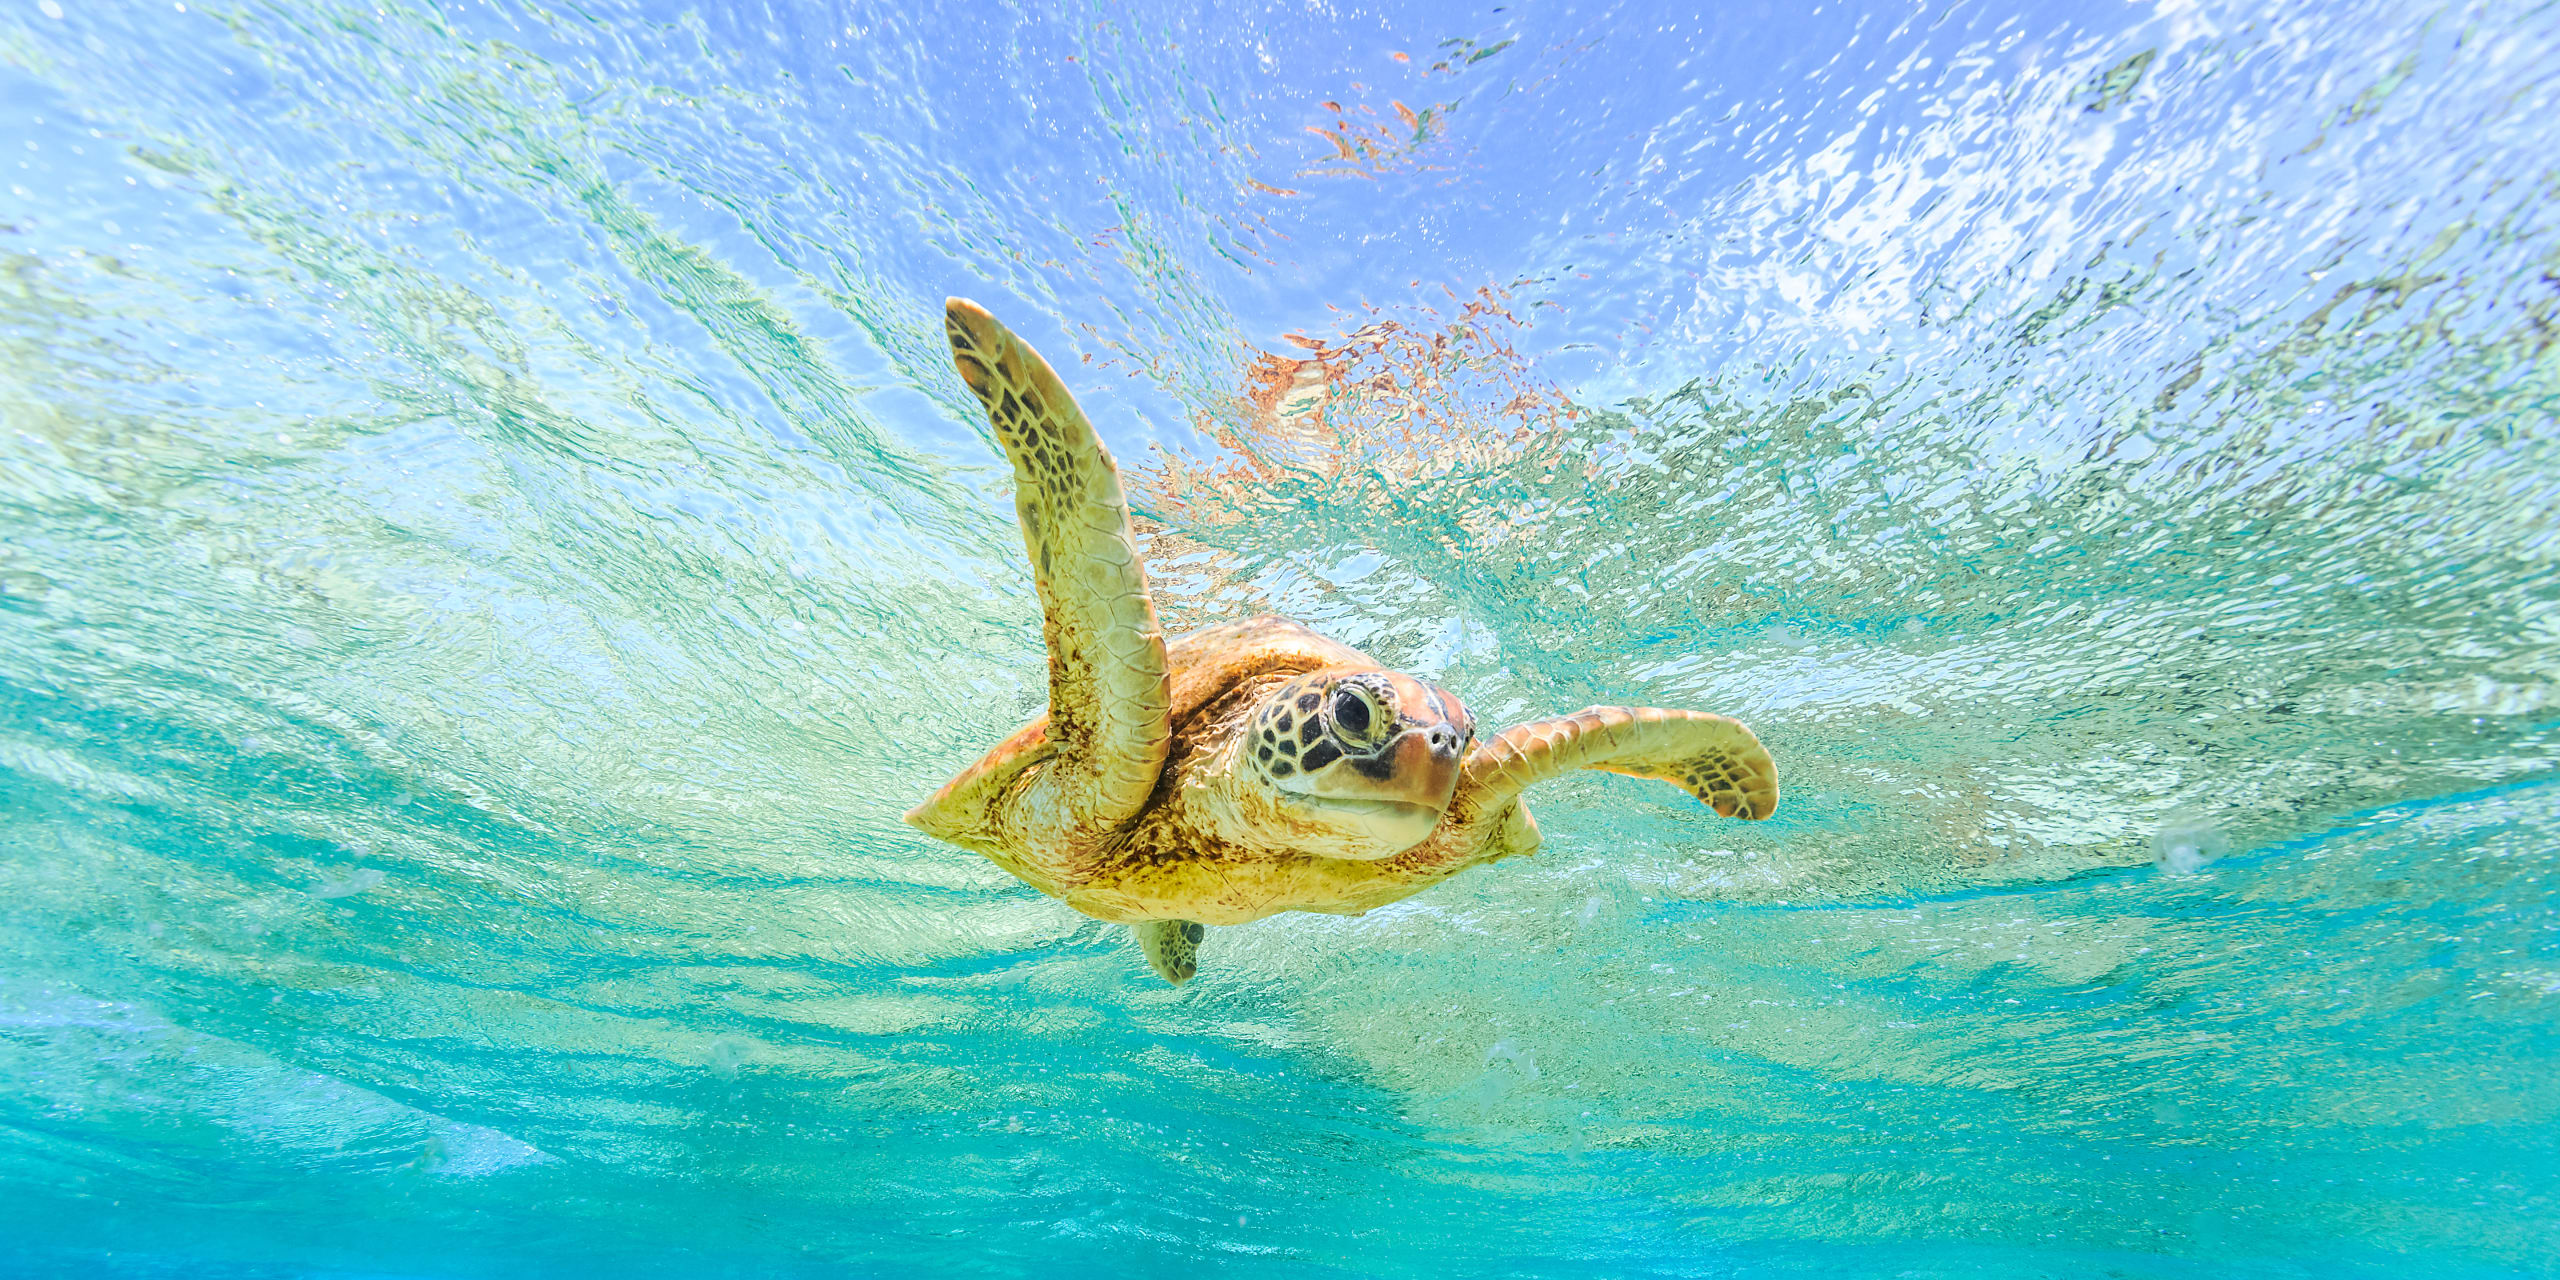 New South Wales - Snorkelling in Australia with Sea Turtles